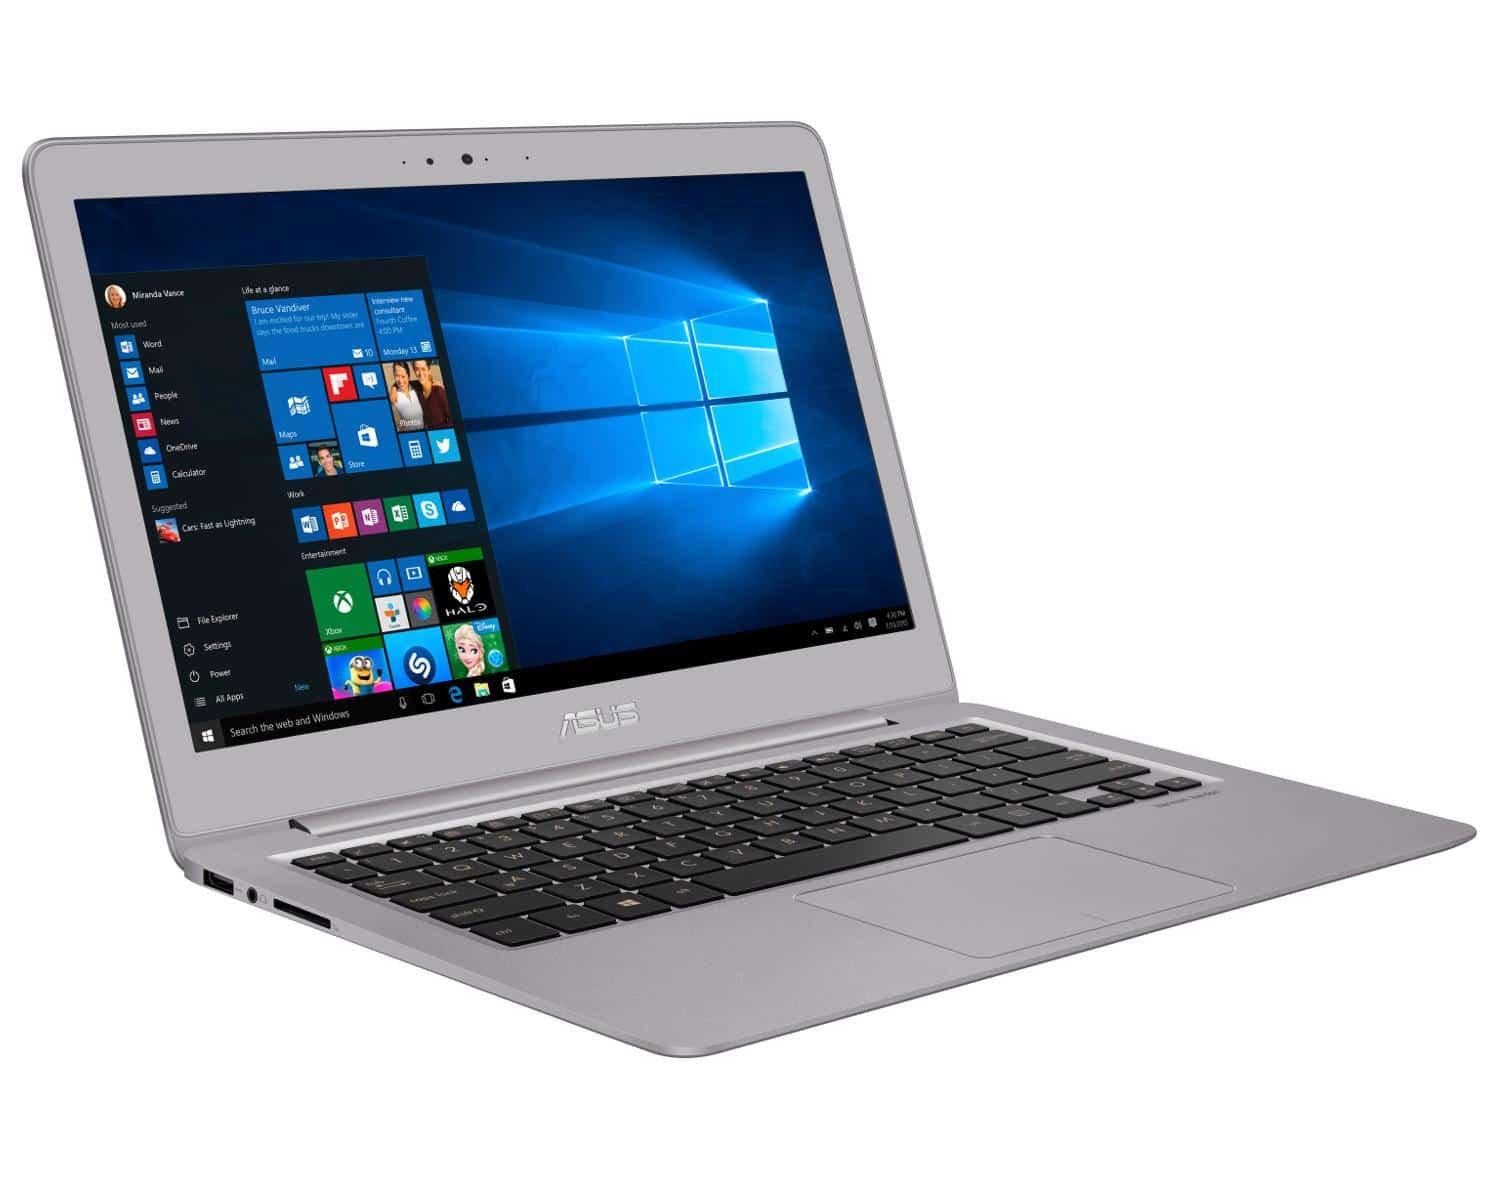 Asus Zenbook UX330CA-FC030T, ultrabook 13 pouces i5 Kaby-Y Full IPS soldes 699€